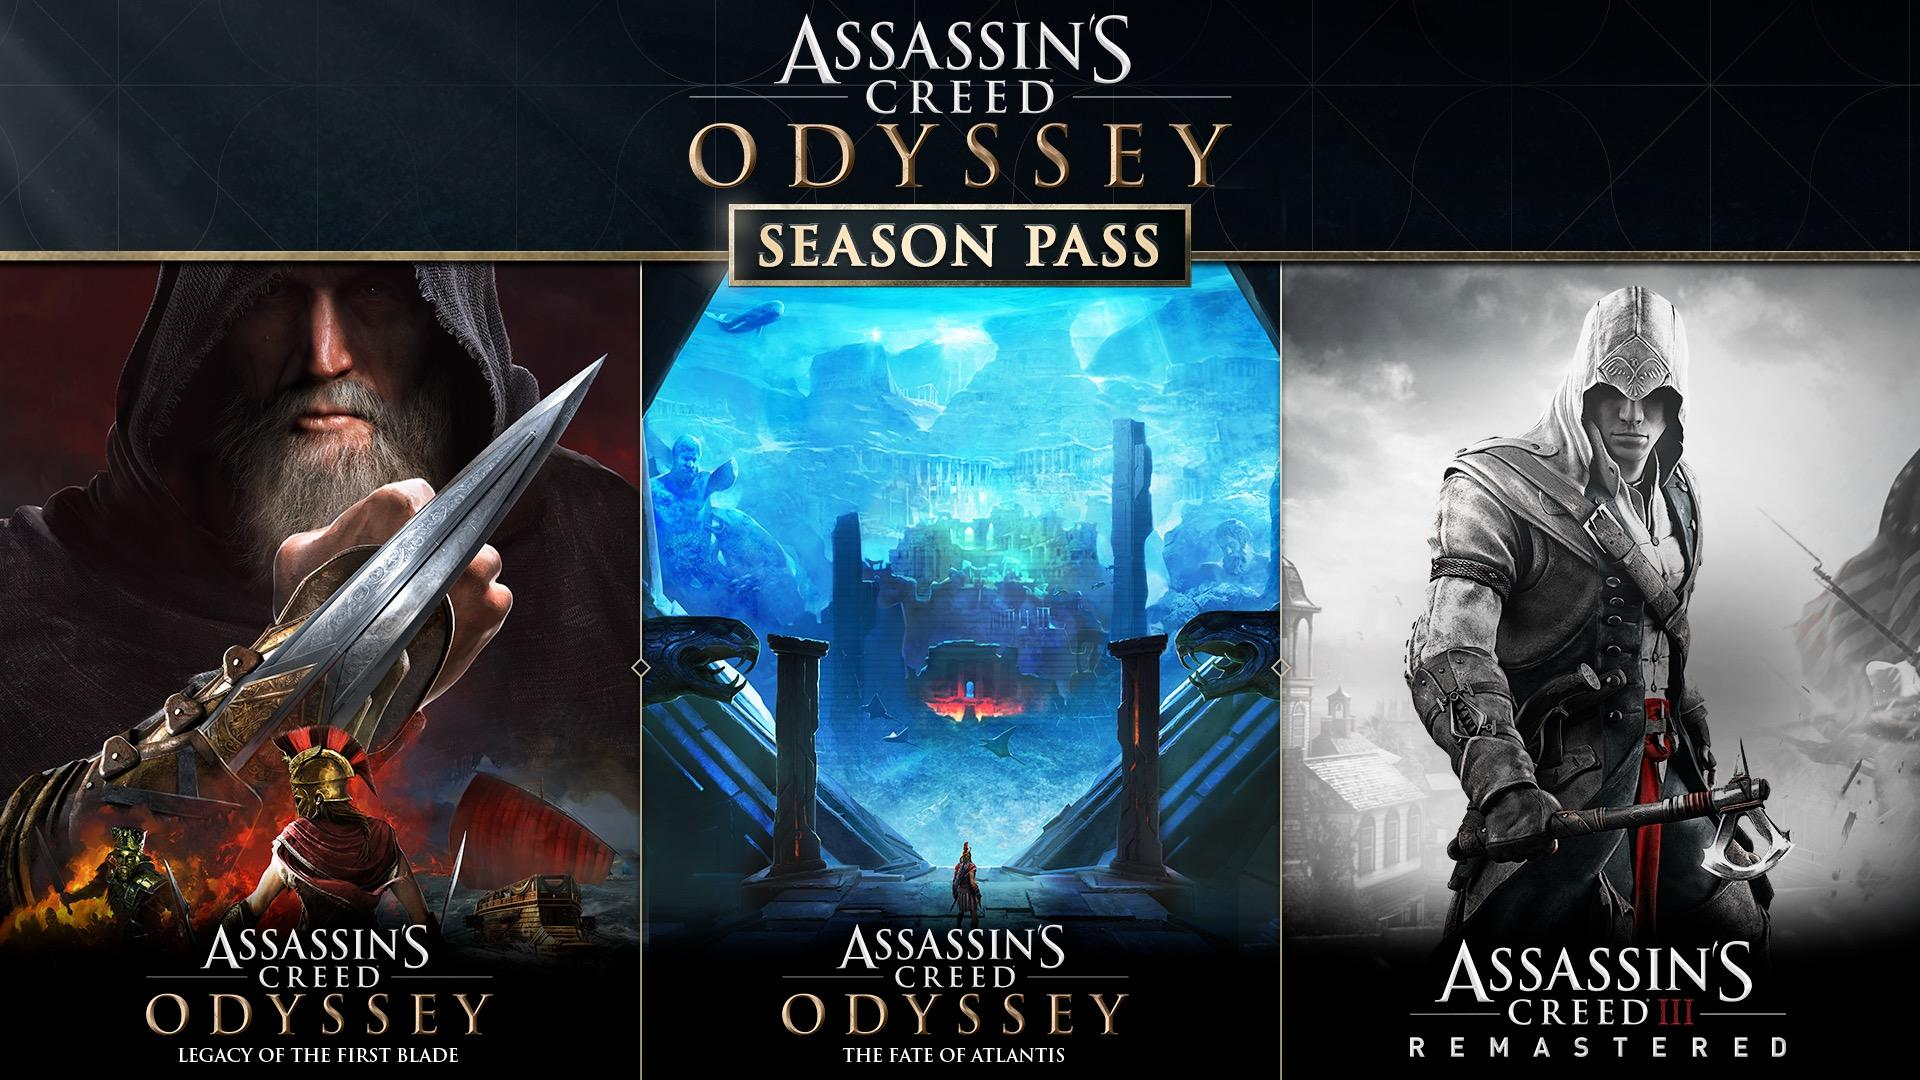 Assassin's Creed Odyssey post-launch and Season Pass content detailed